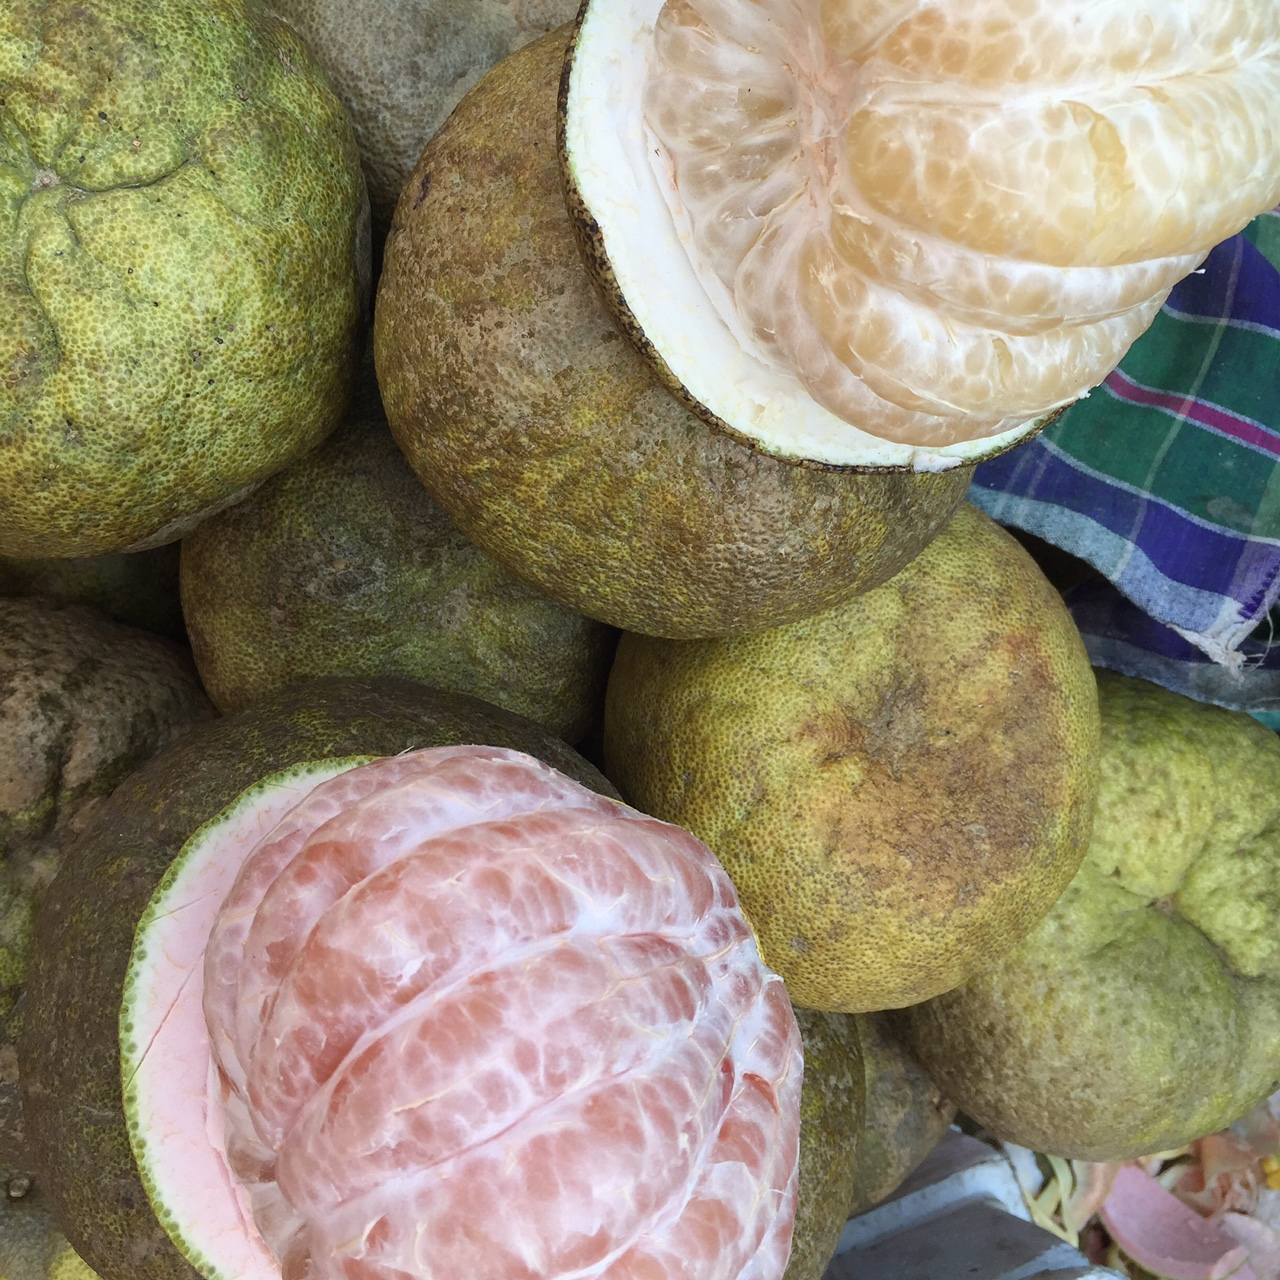 Neatly stacked, basket full of pomelos at the market in Yangon, Myanmar